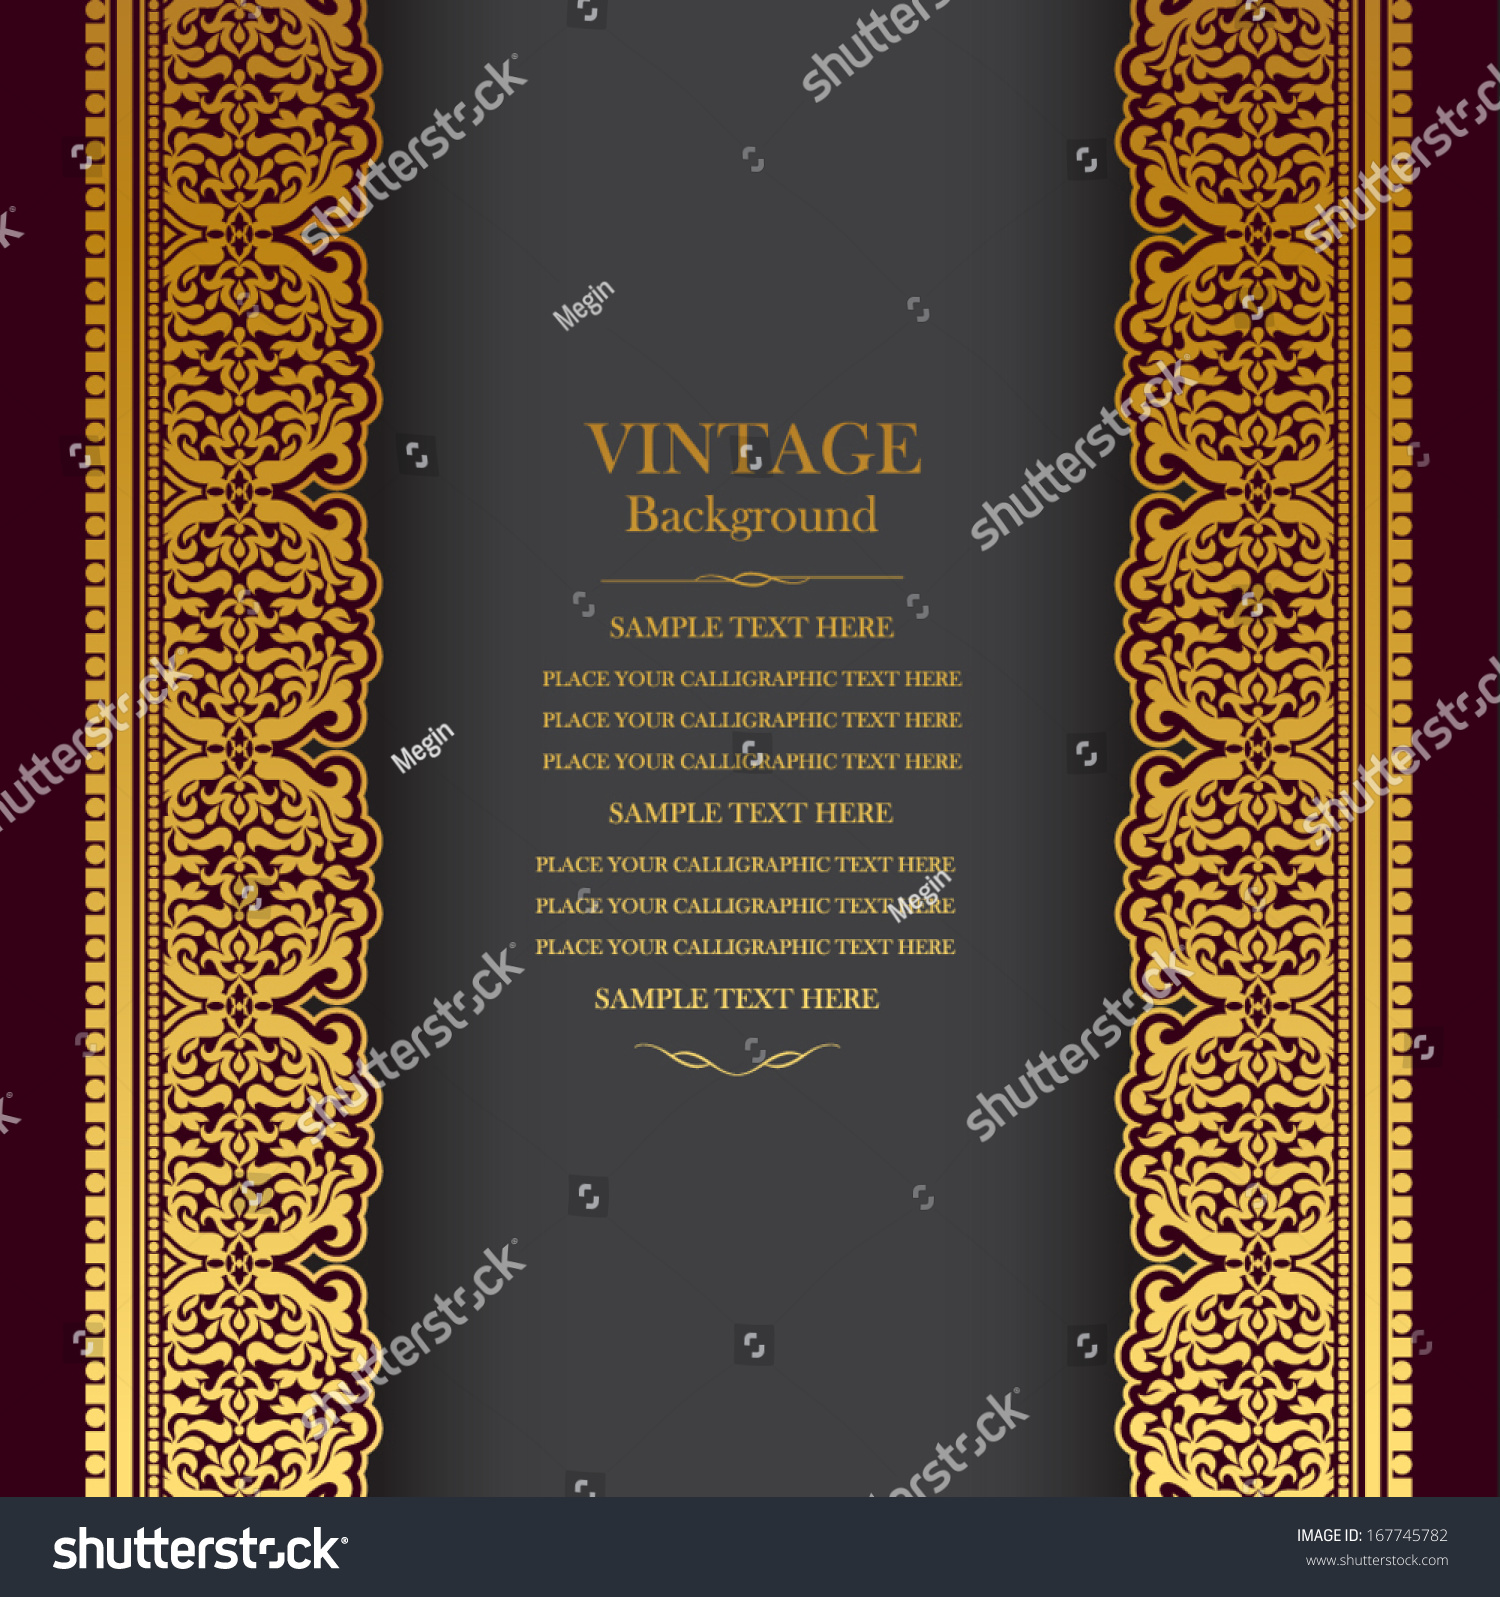 vintage background design elegant book cover stock vector